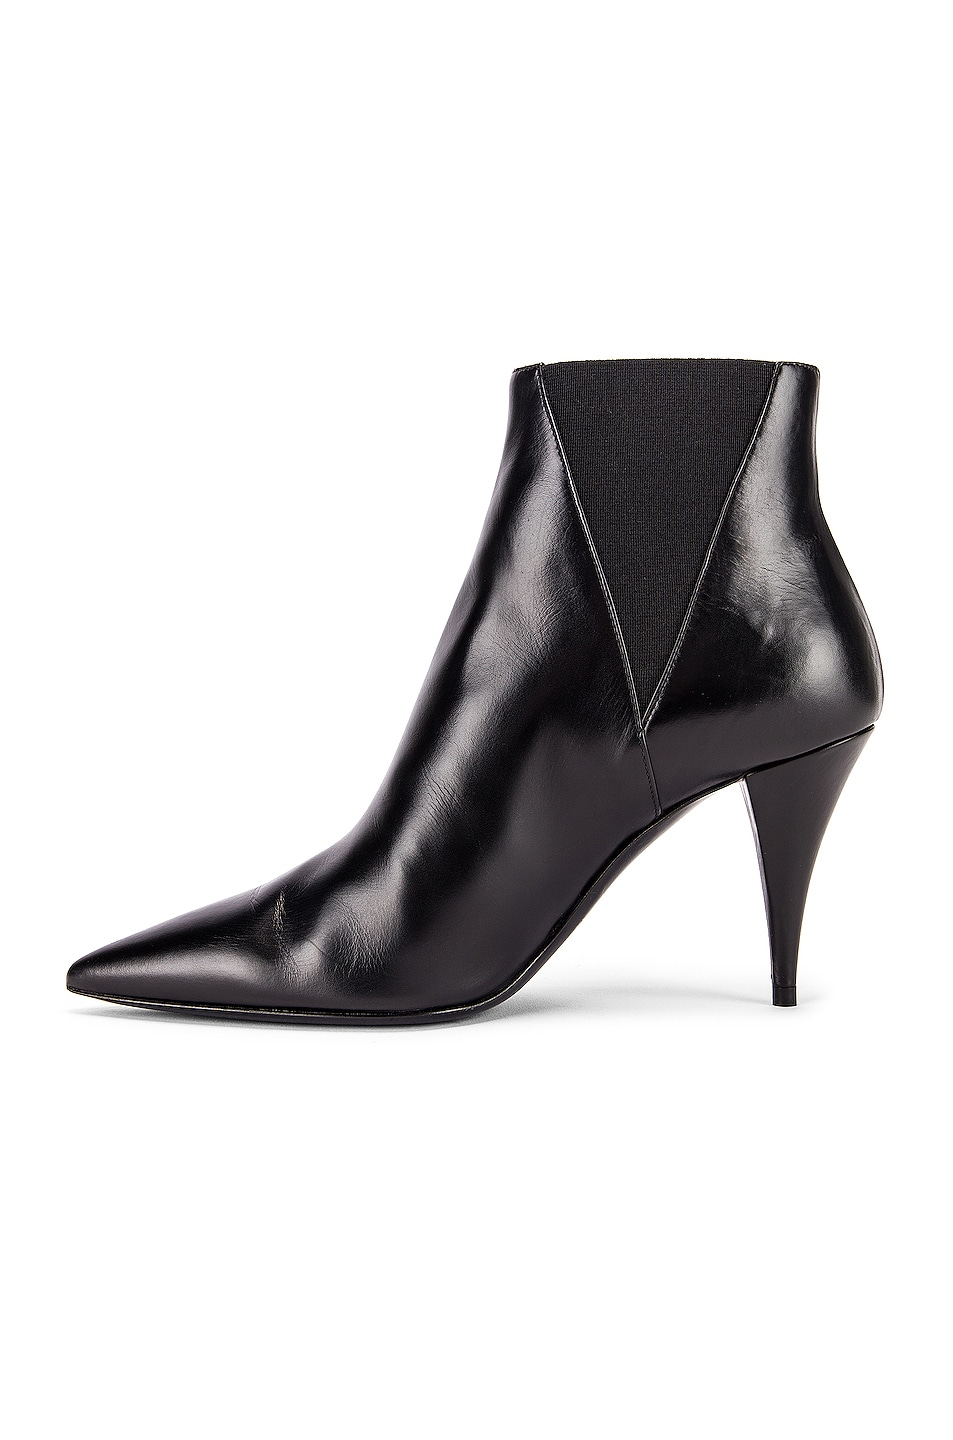 Image 5 of Saint Laurent Kiki Chelsea Booties in Black